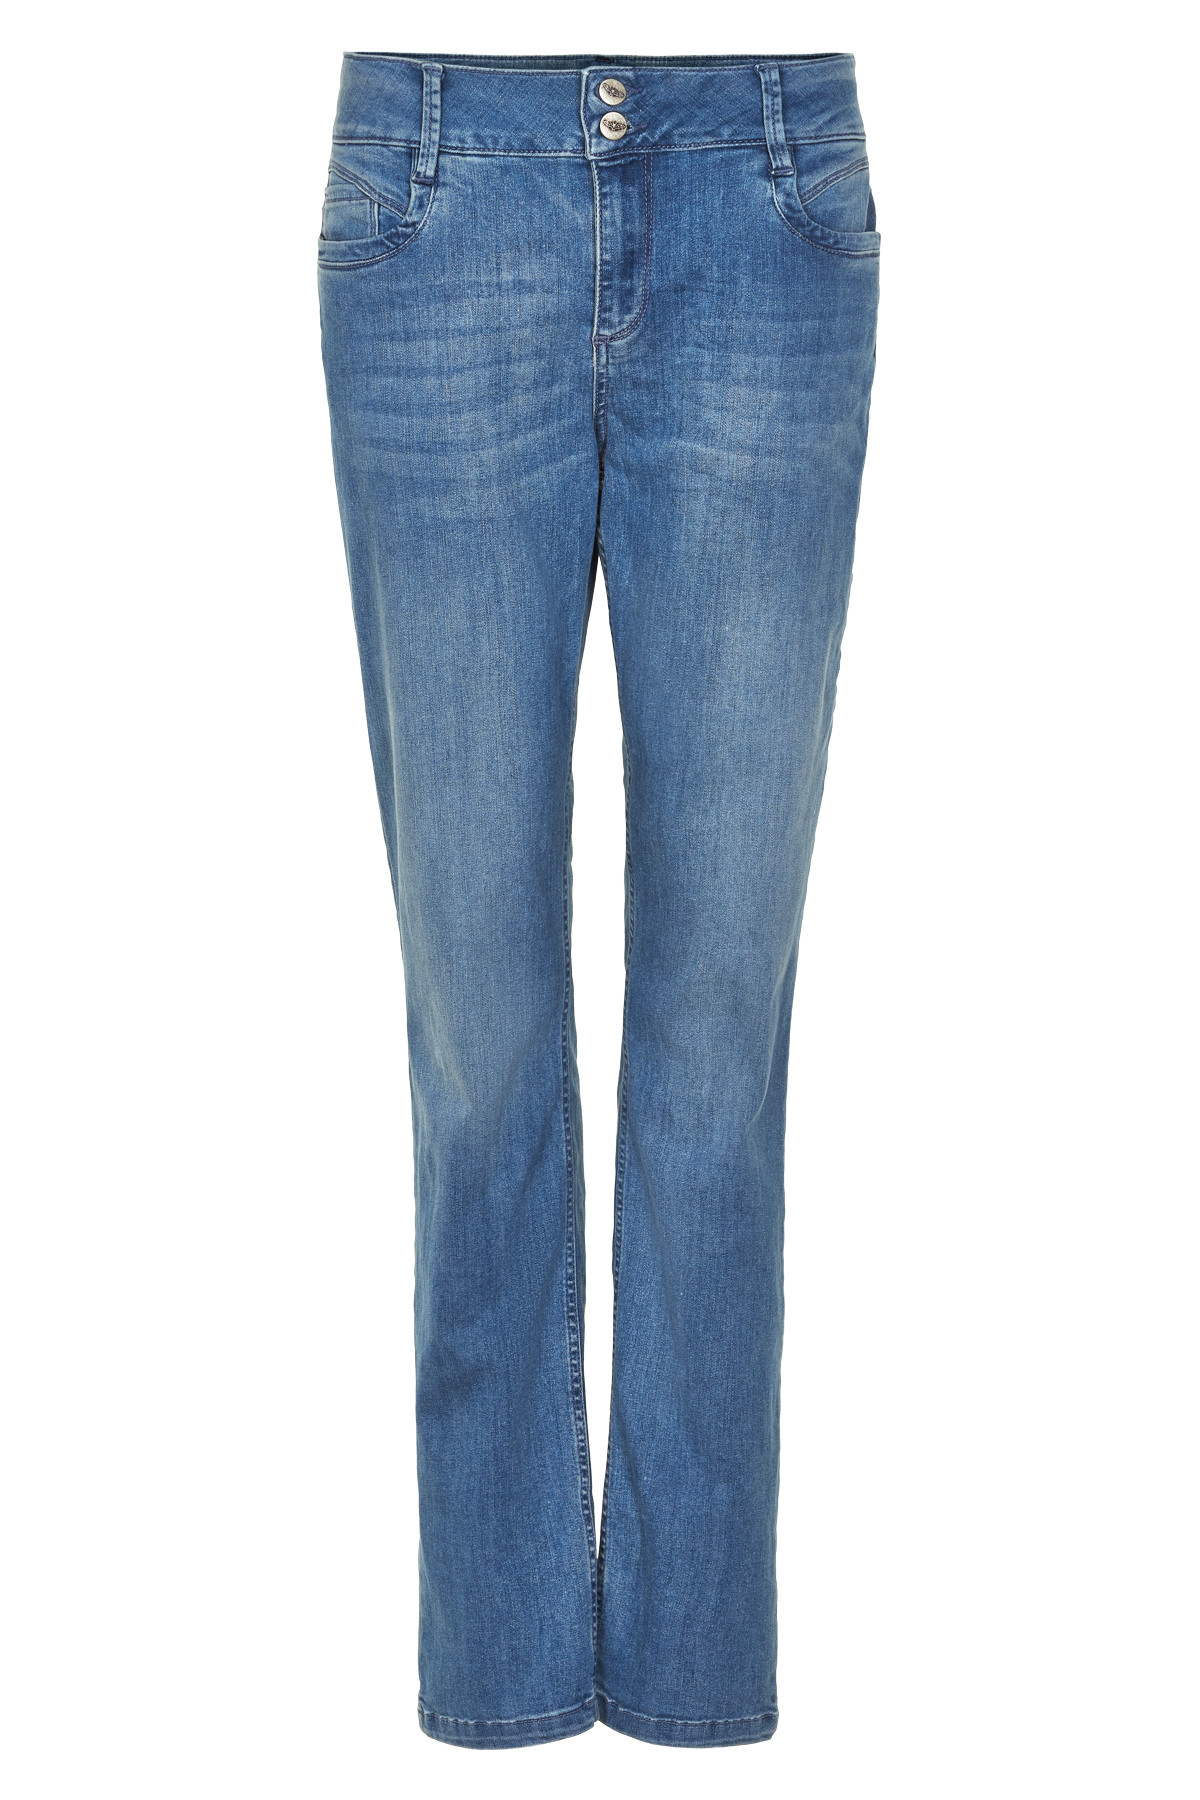 "Image of   Denim Hunter REGITZE CURVED JEANS 10701678 BW (Blue Wash 38510, ""32"", 26)"